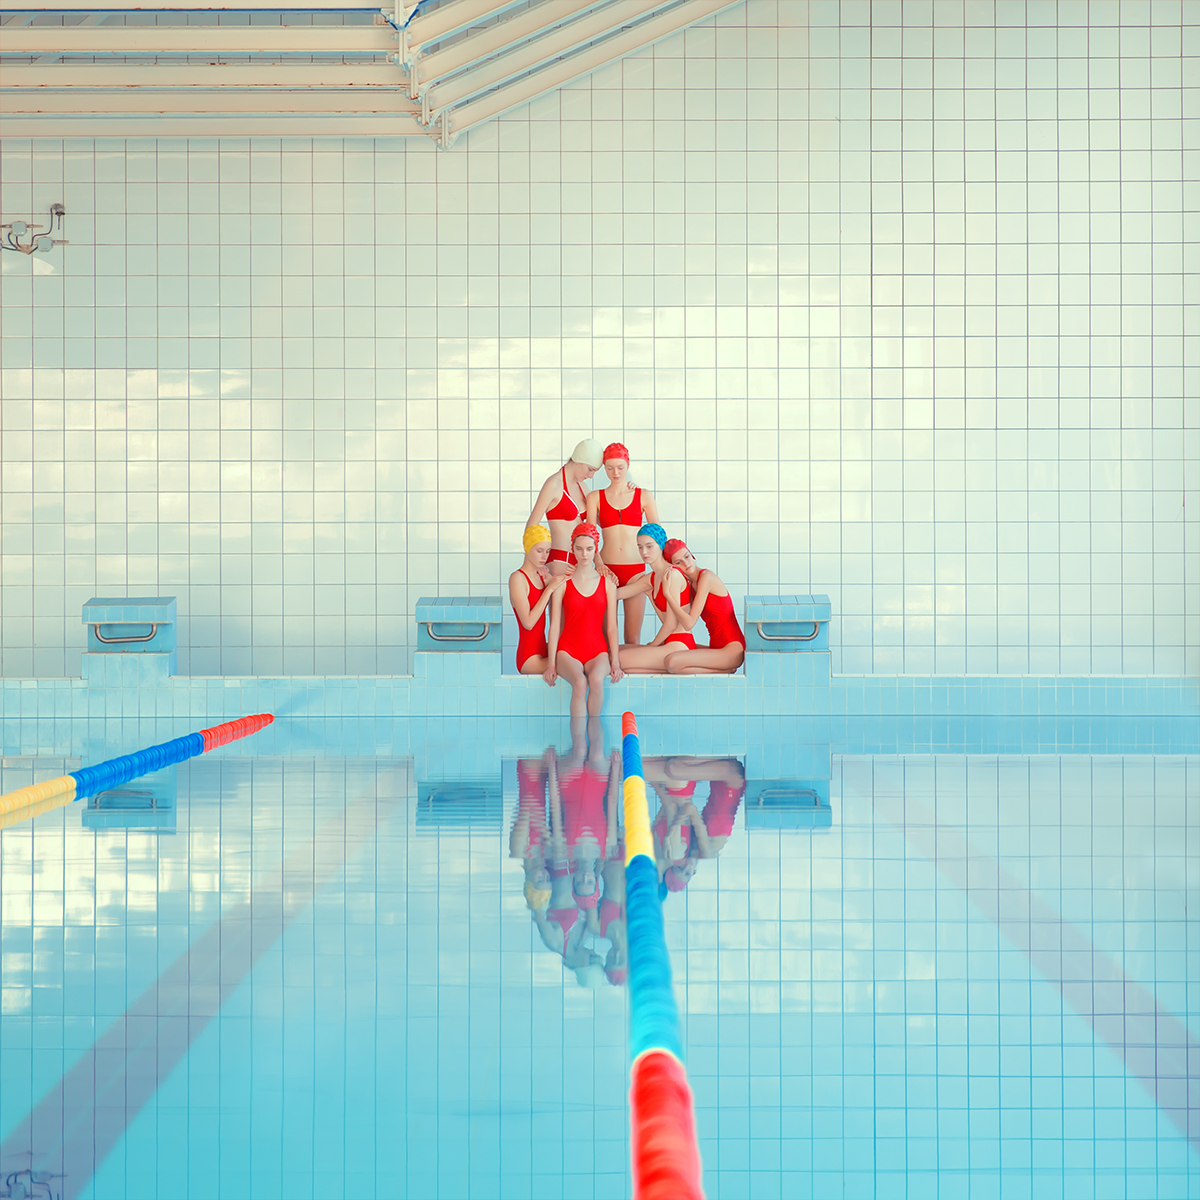 Girl Pool, Archival Pigment Print